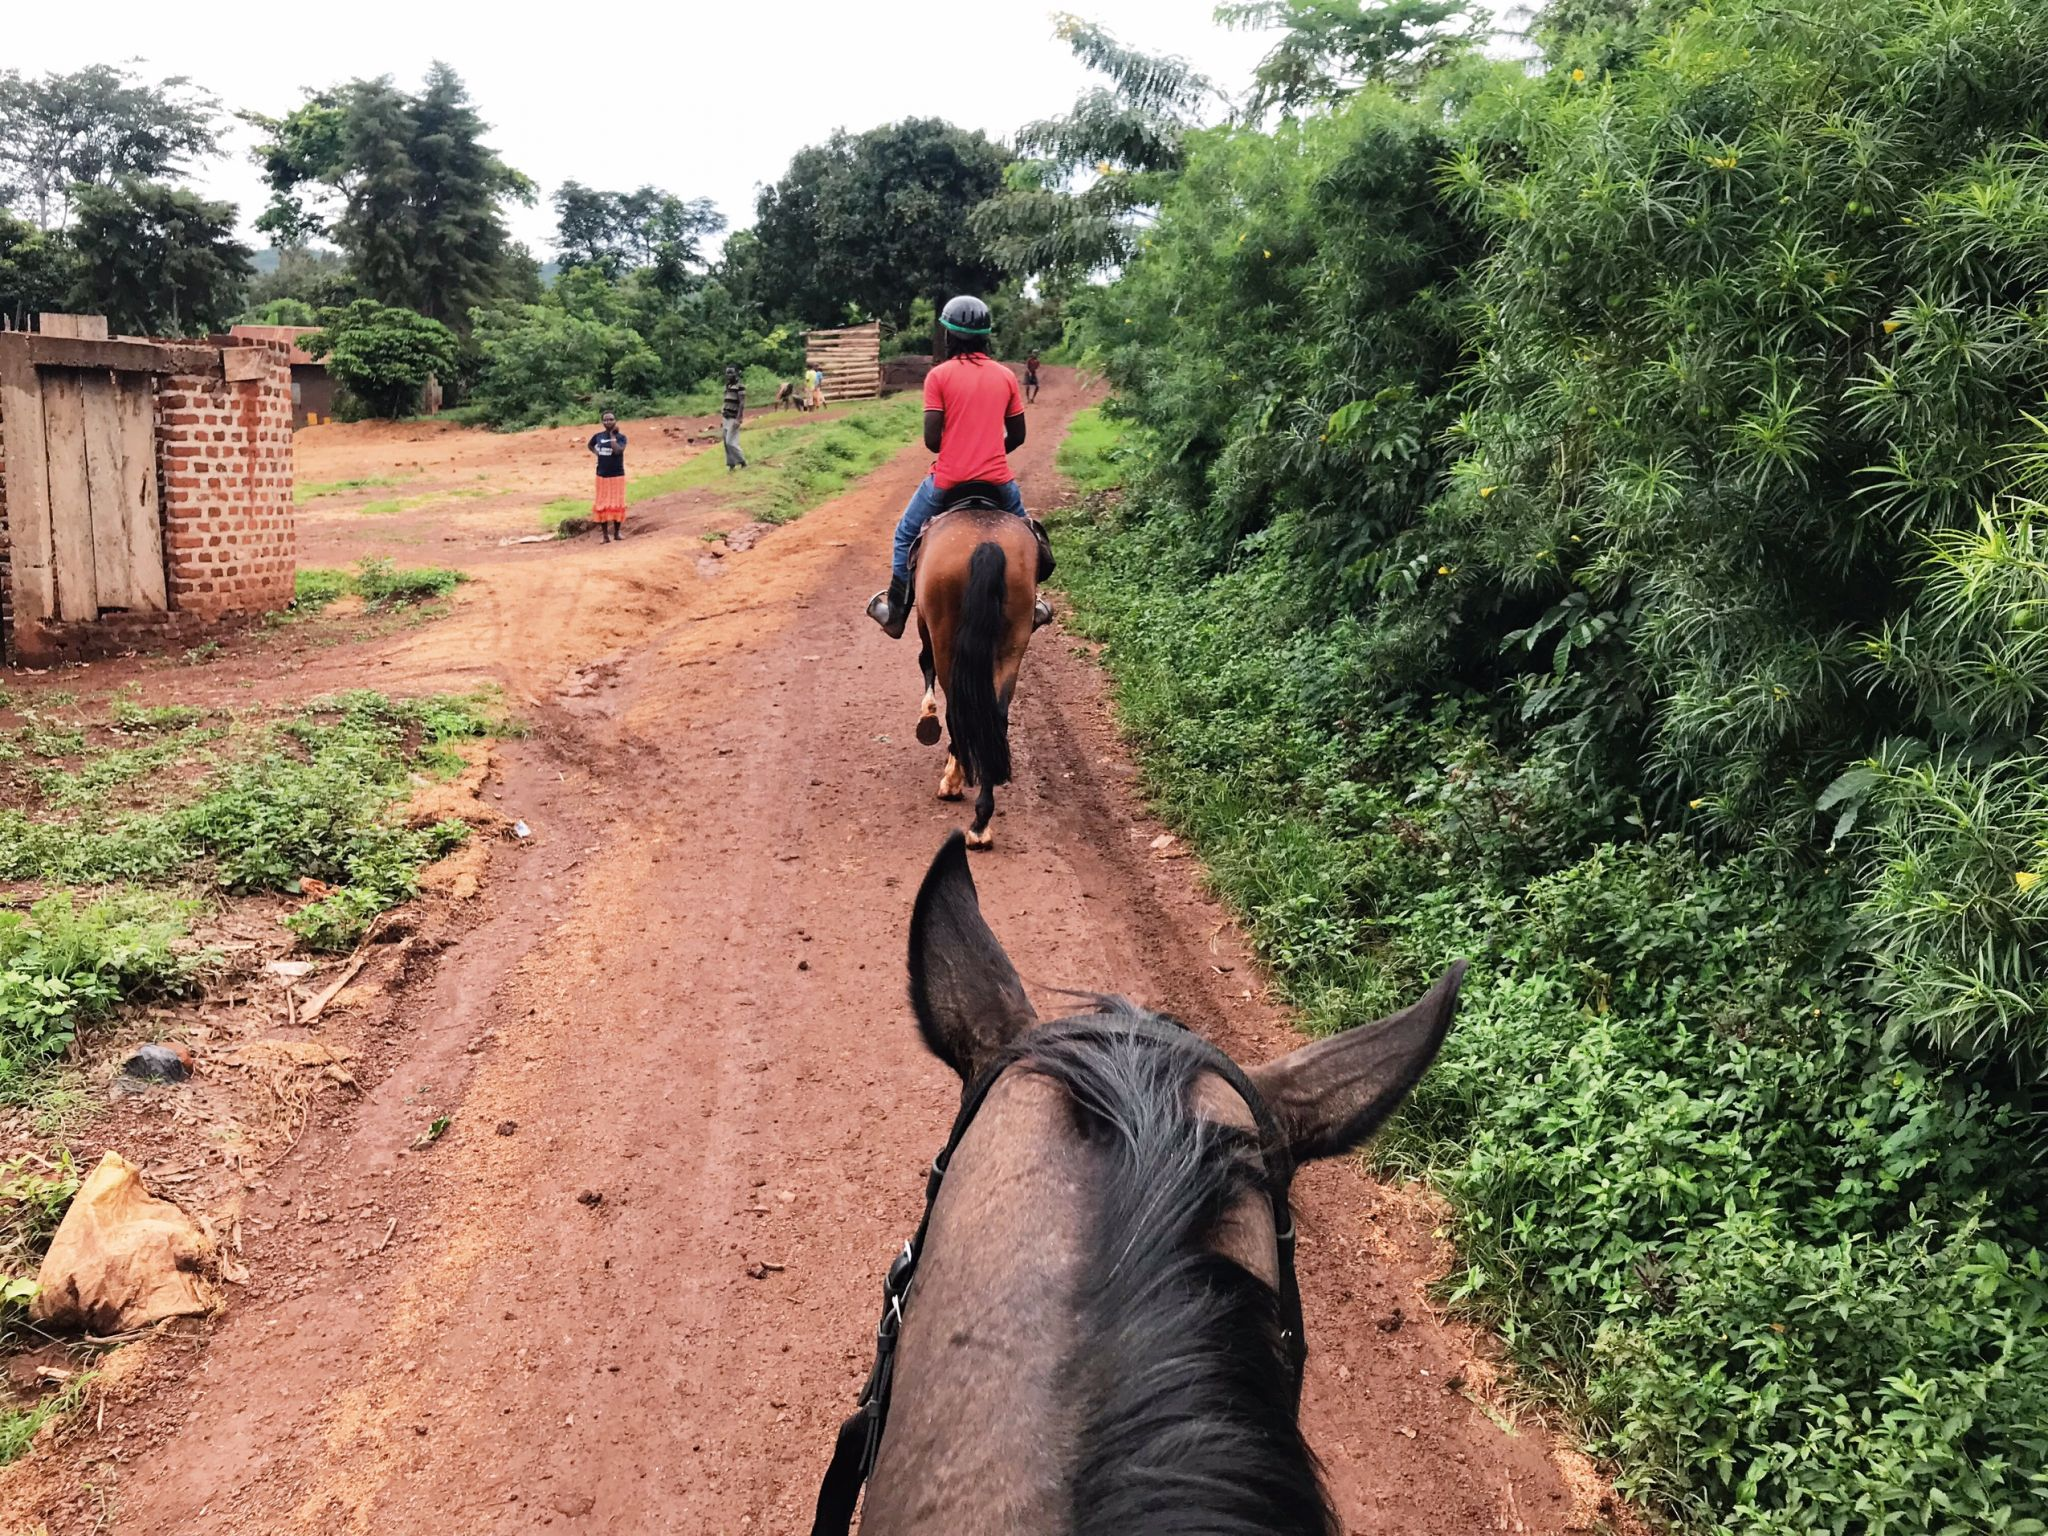 image of horse riding in Jinja